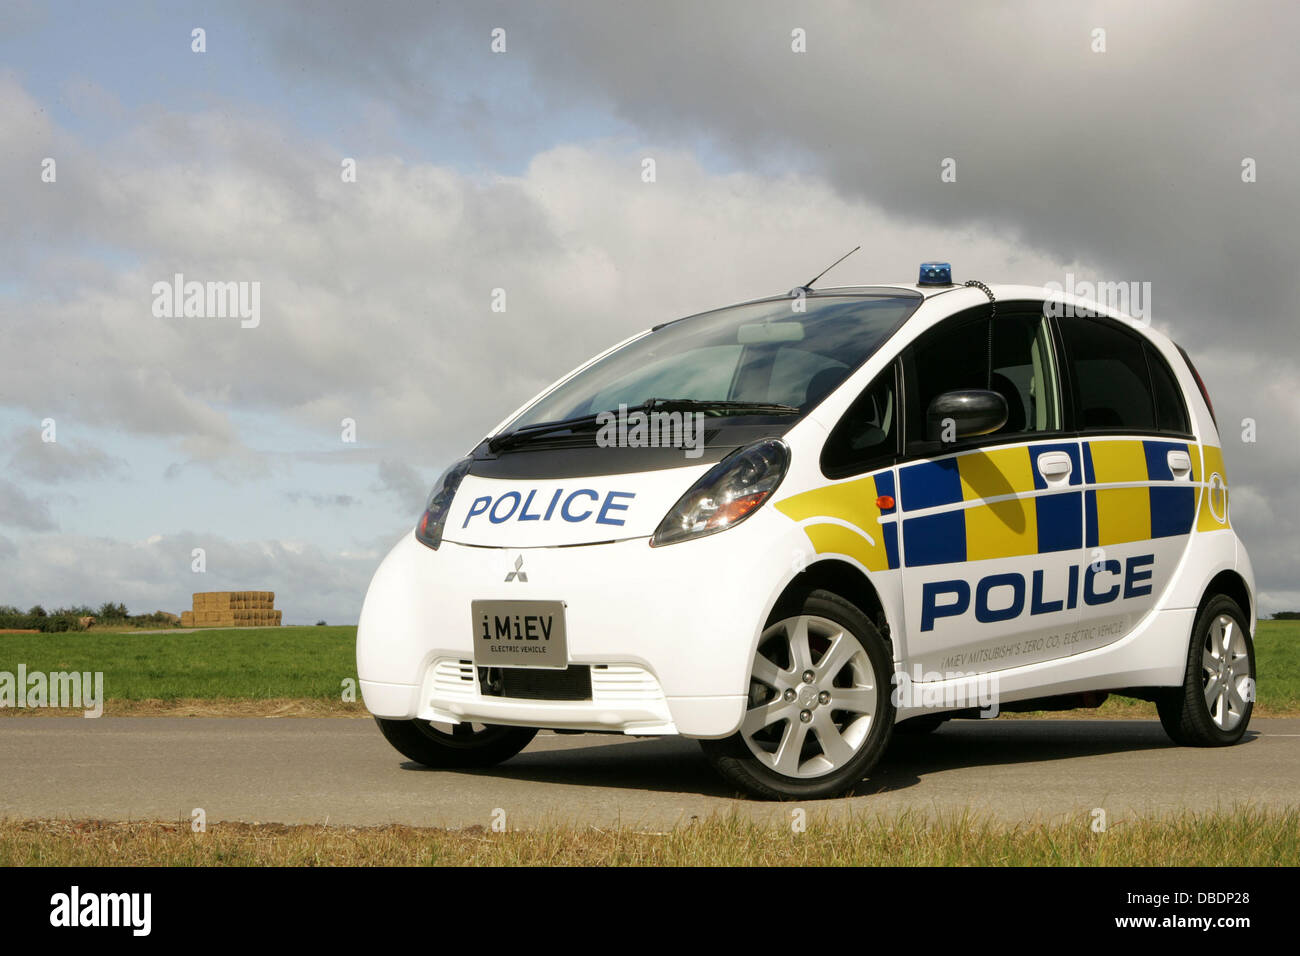 Police Chases Stock Photos & Police Chases Stock Images - Alamy